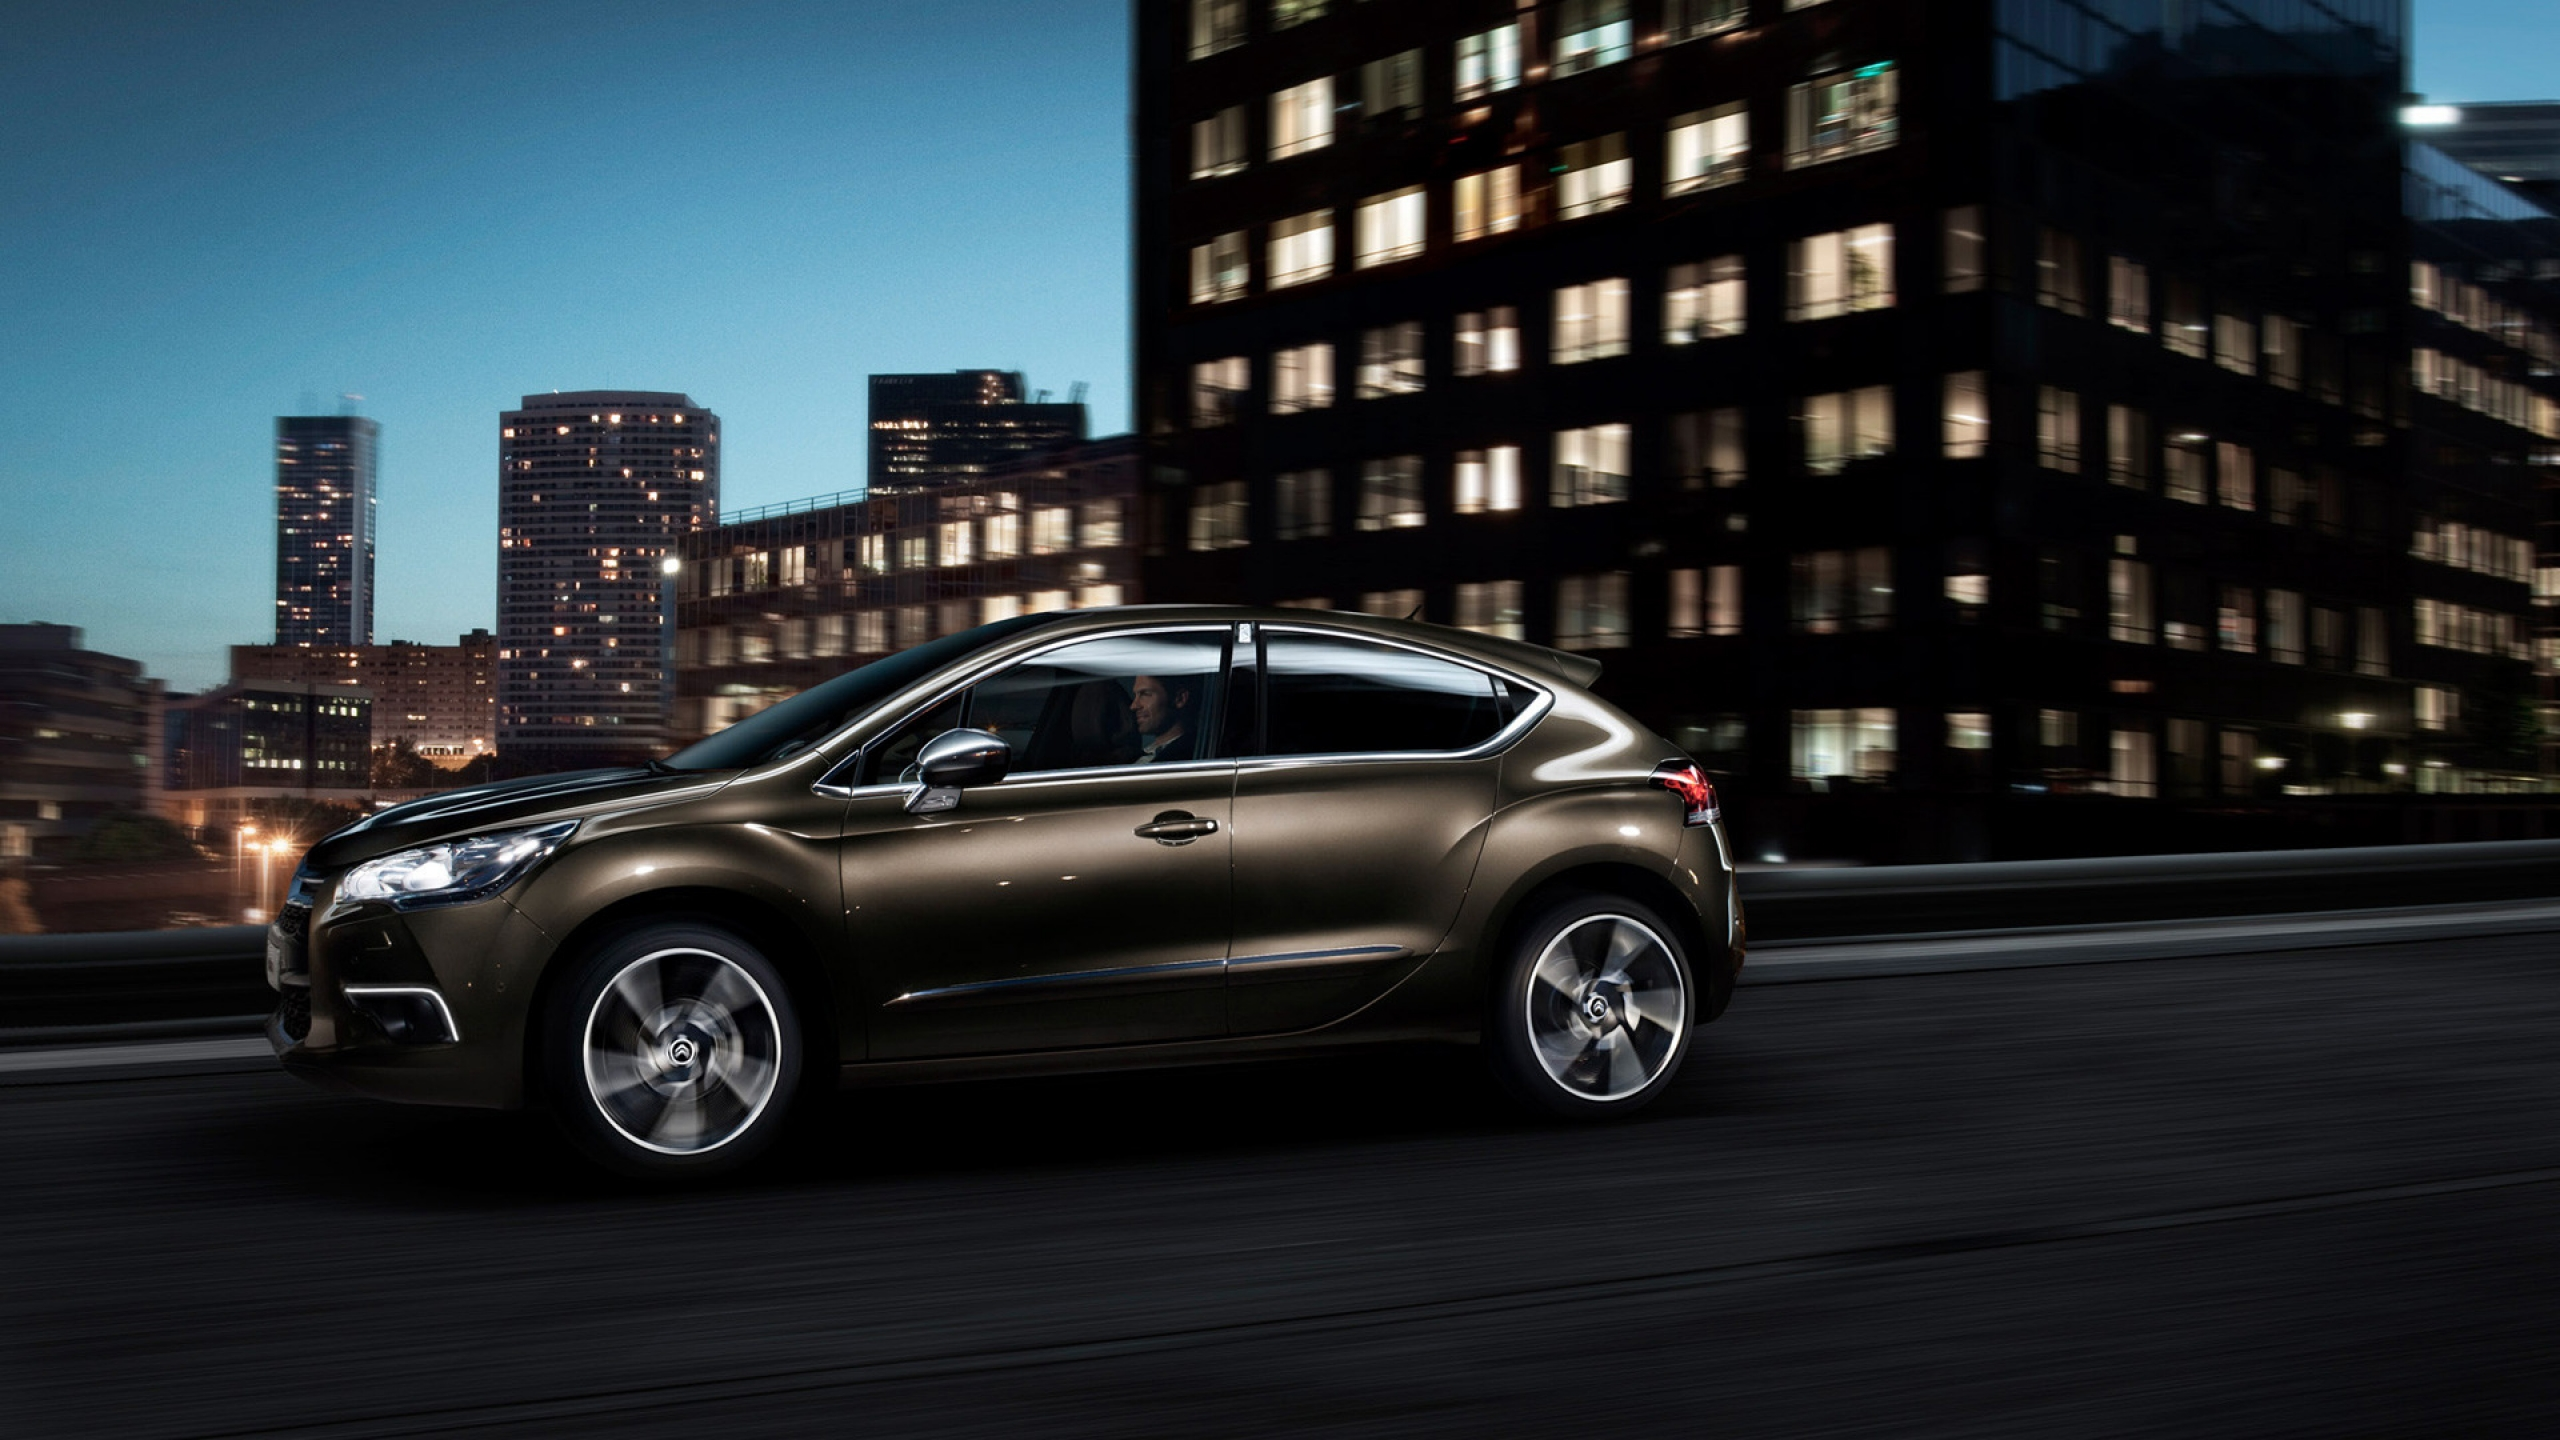 citroen ds4 2011 2560x1440 wallpaper 8475